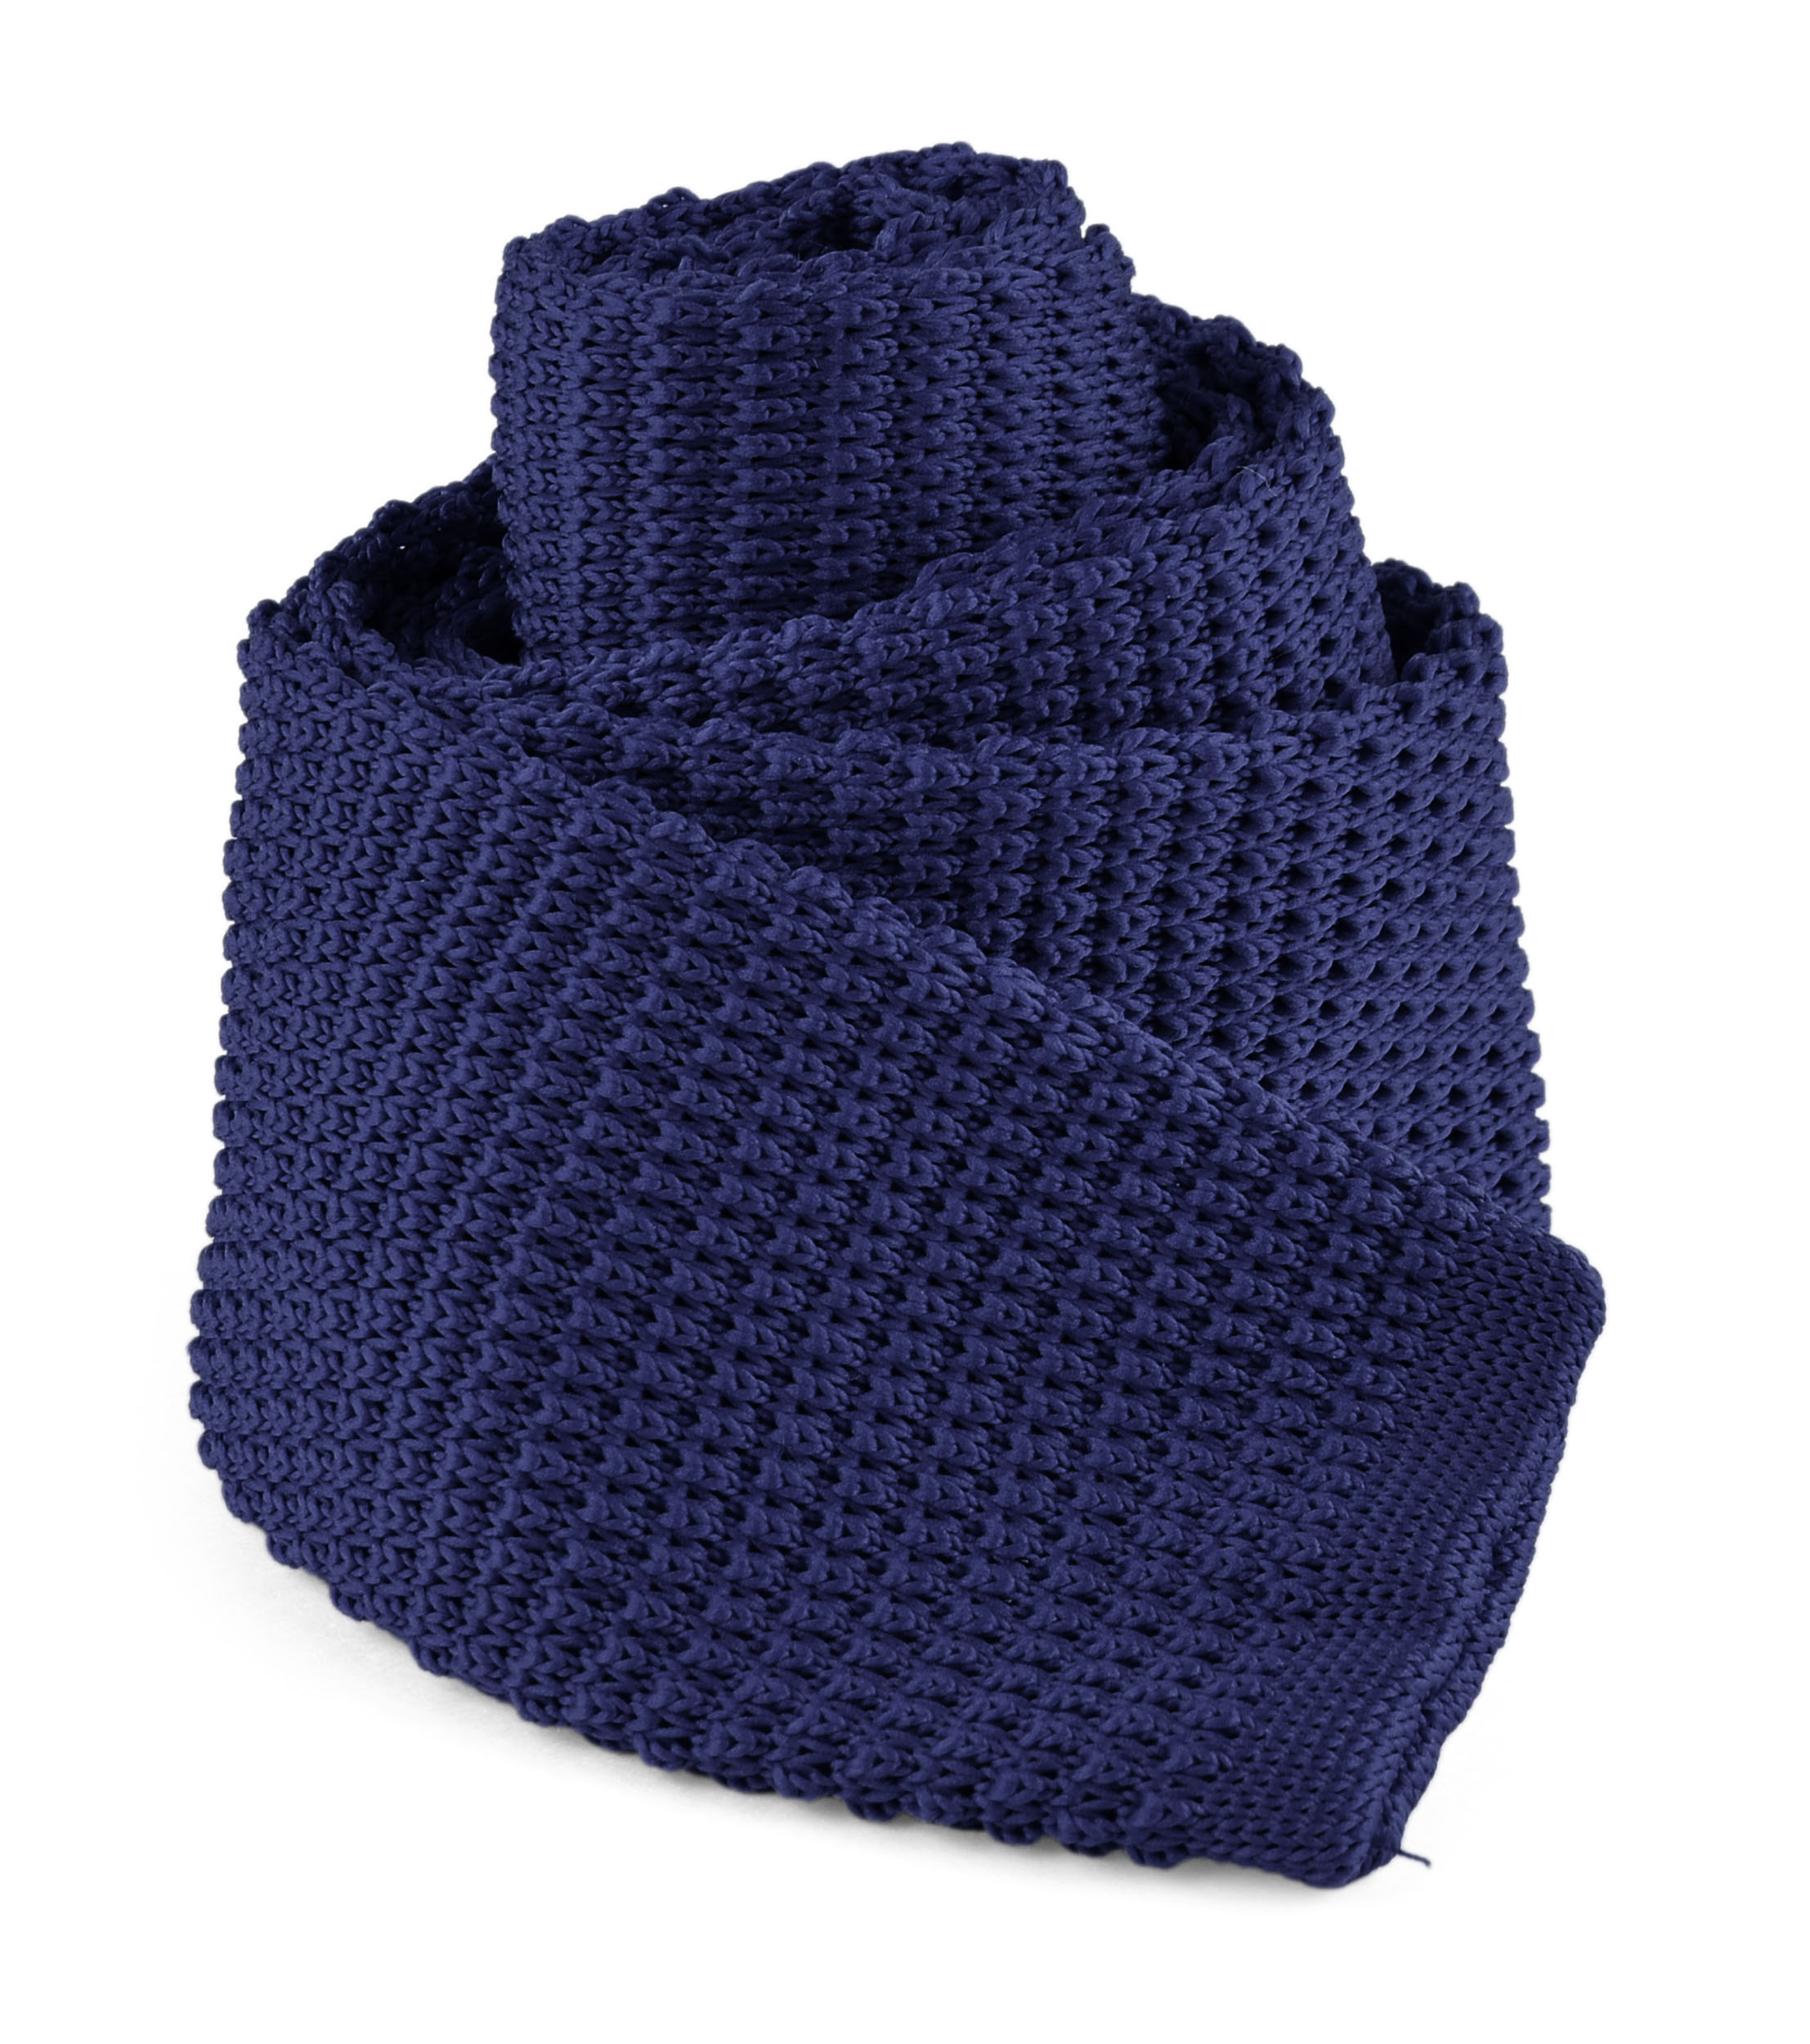 """Moda Di Raza - Mens Casual Solid Color Waffle Knit Woven Square End Neck Tie - 2.25"""" - Navy Blue"""